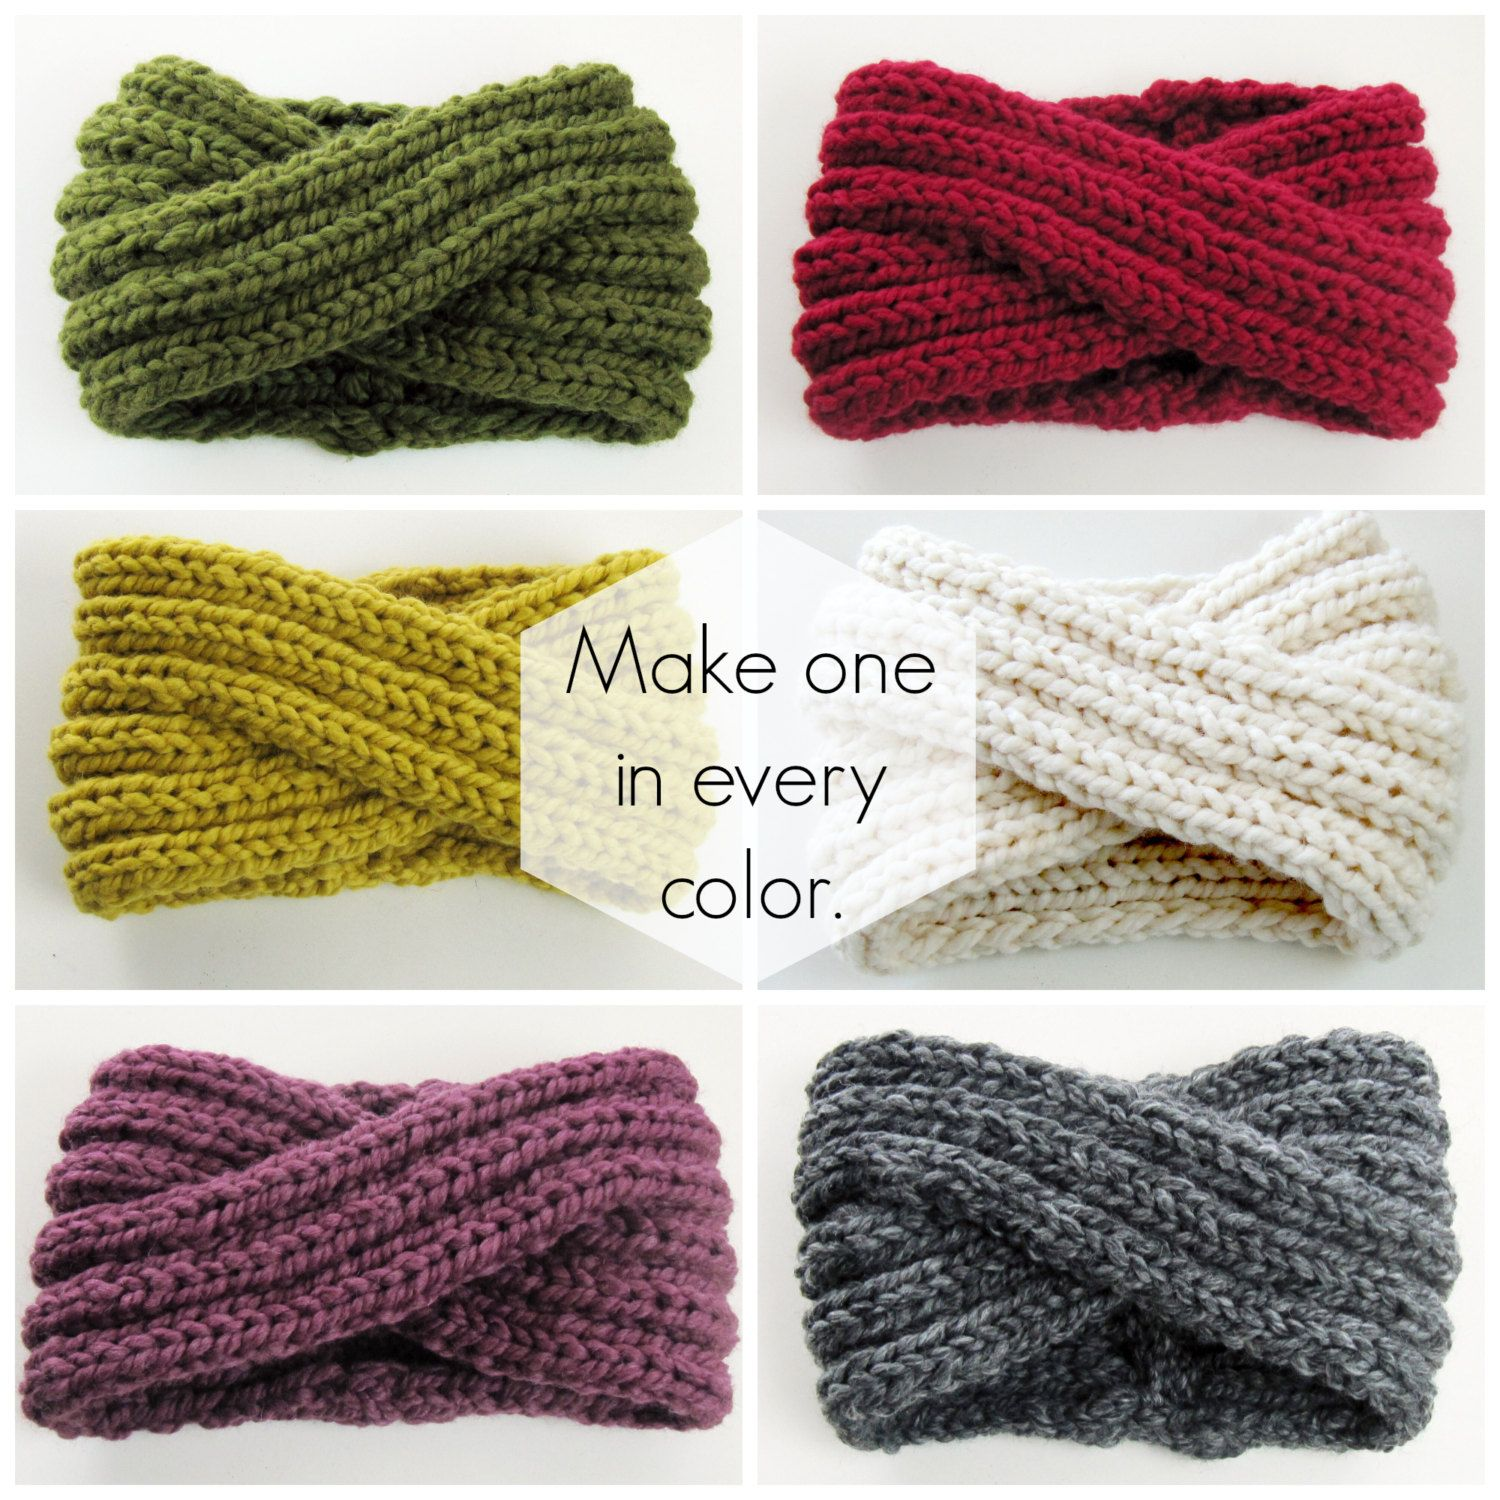 A quick stylish one skein project you can wear as a headband or a quick stylish one skein project you can wear as a headband or pulled down as a cowl this headband knitting pattern teaches you a clever bankloansurffo Images